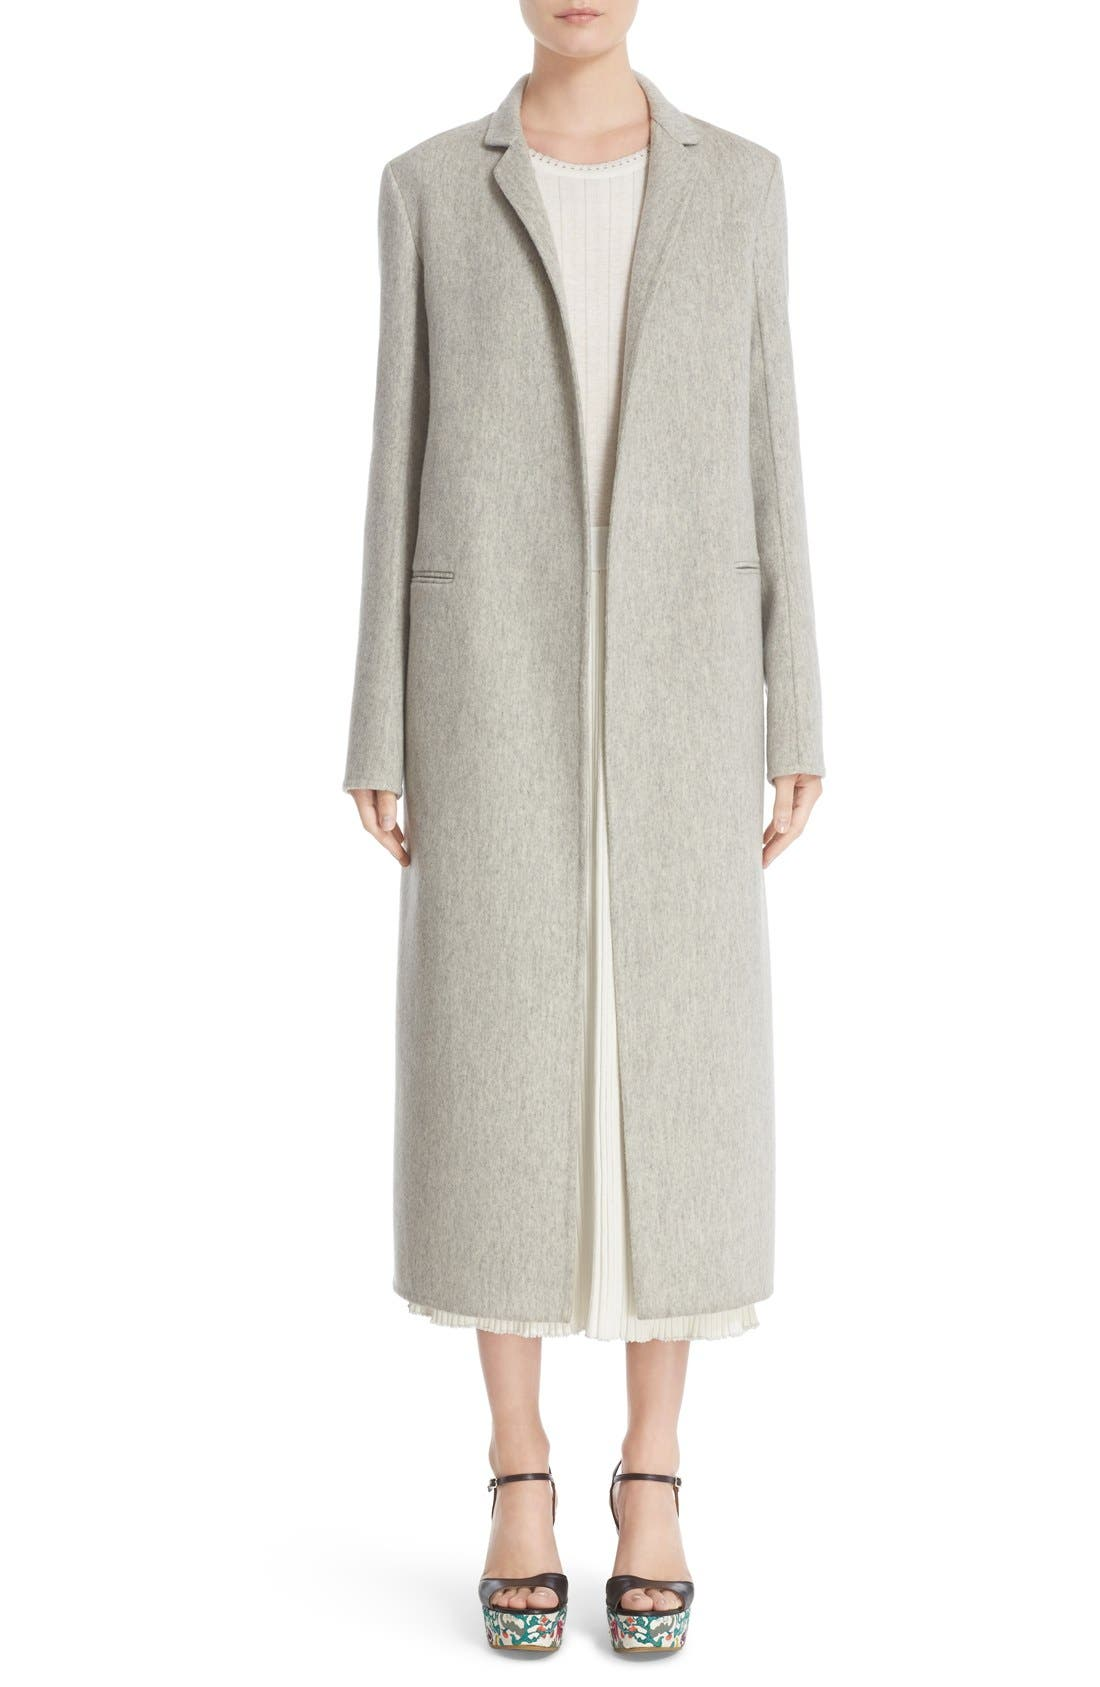 Alternate Image 1 Selected - Adam Lippes Double Face Cashmere & Wool Coat